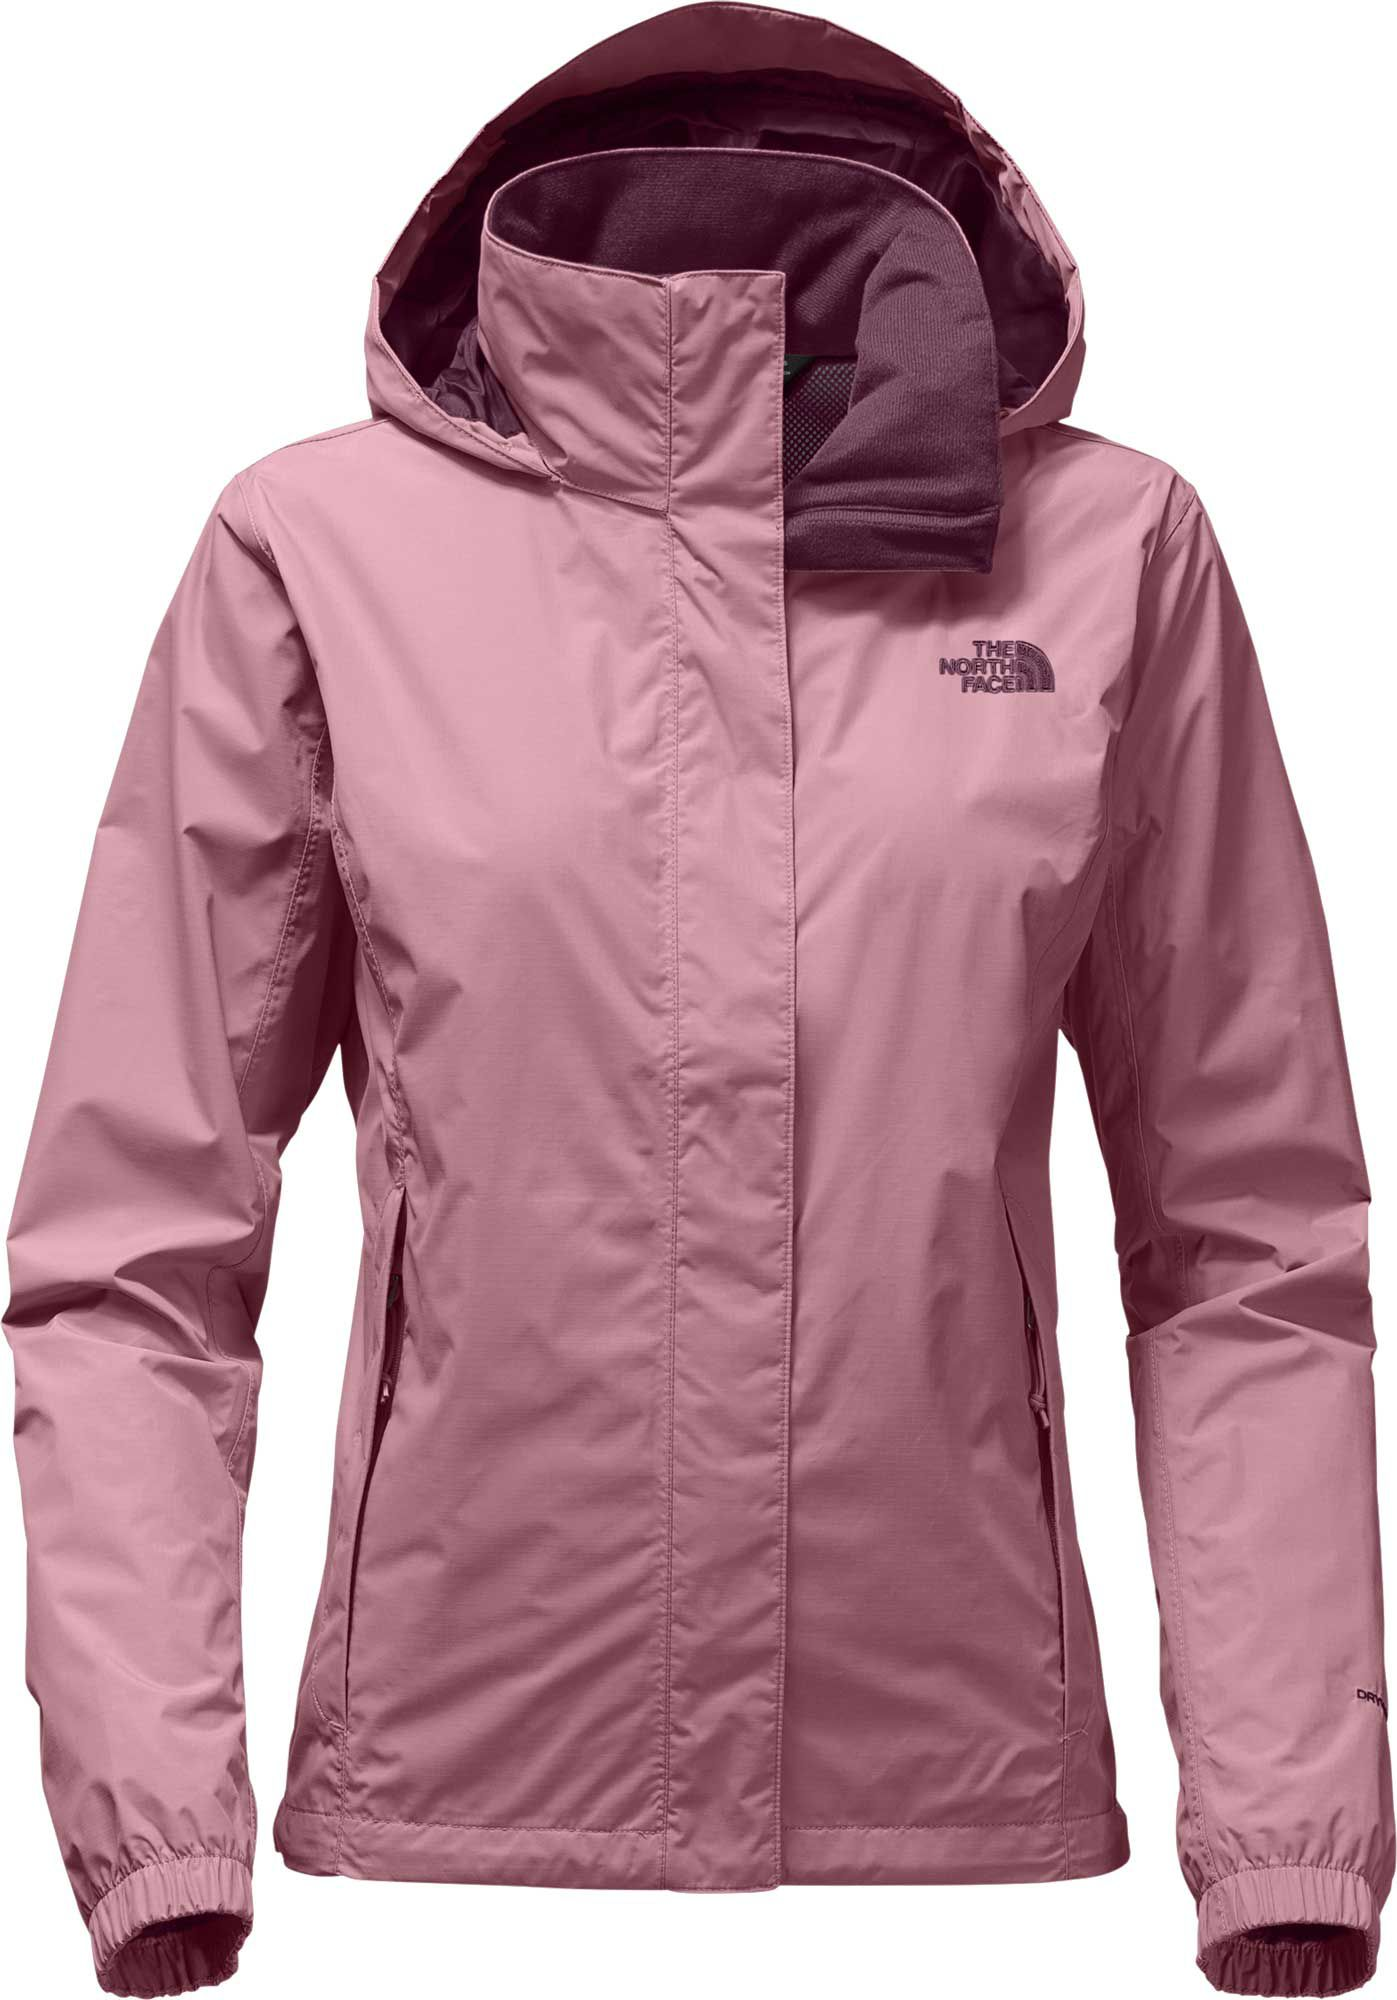 7dd295952c239 The North Face Women's Resolve 2 Jacket, Size: XS, Black in 2019 ...